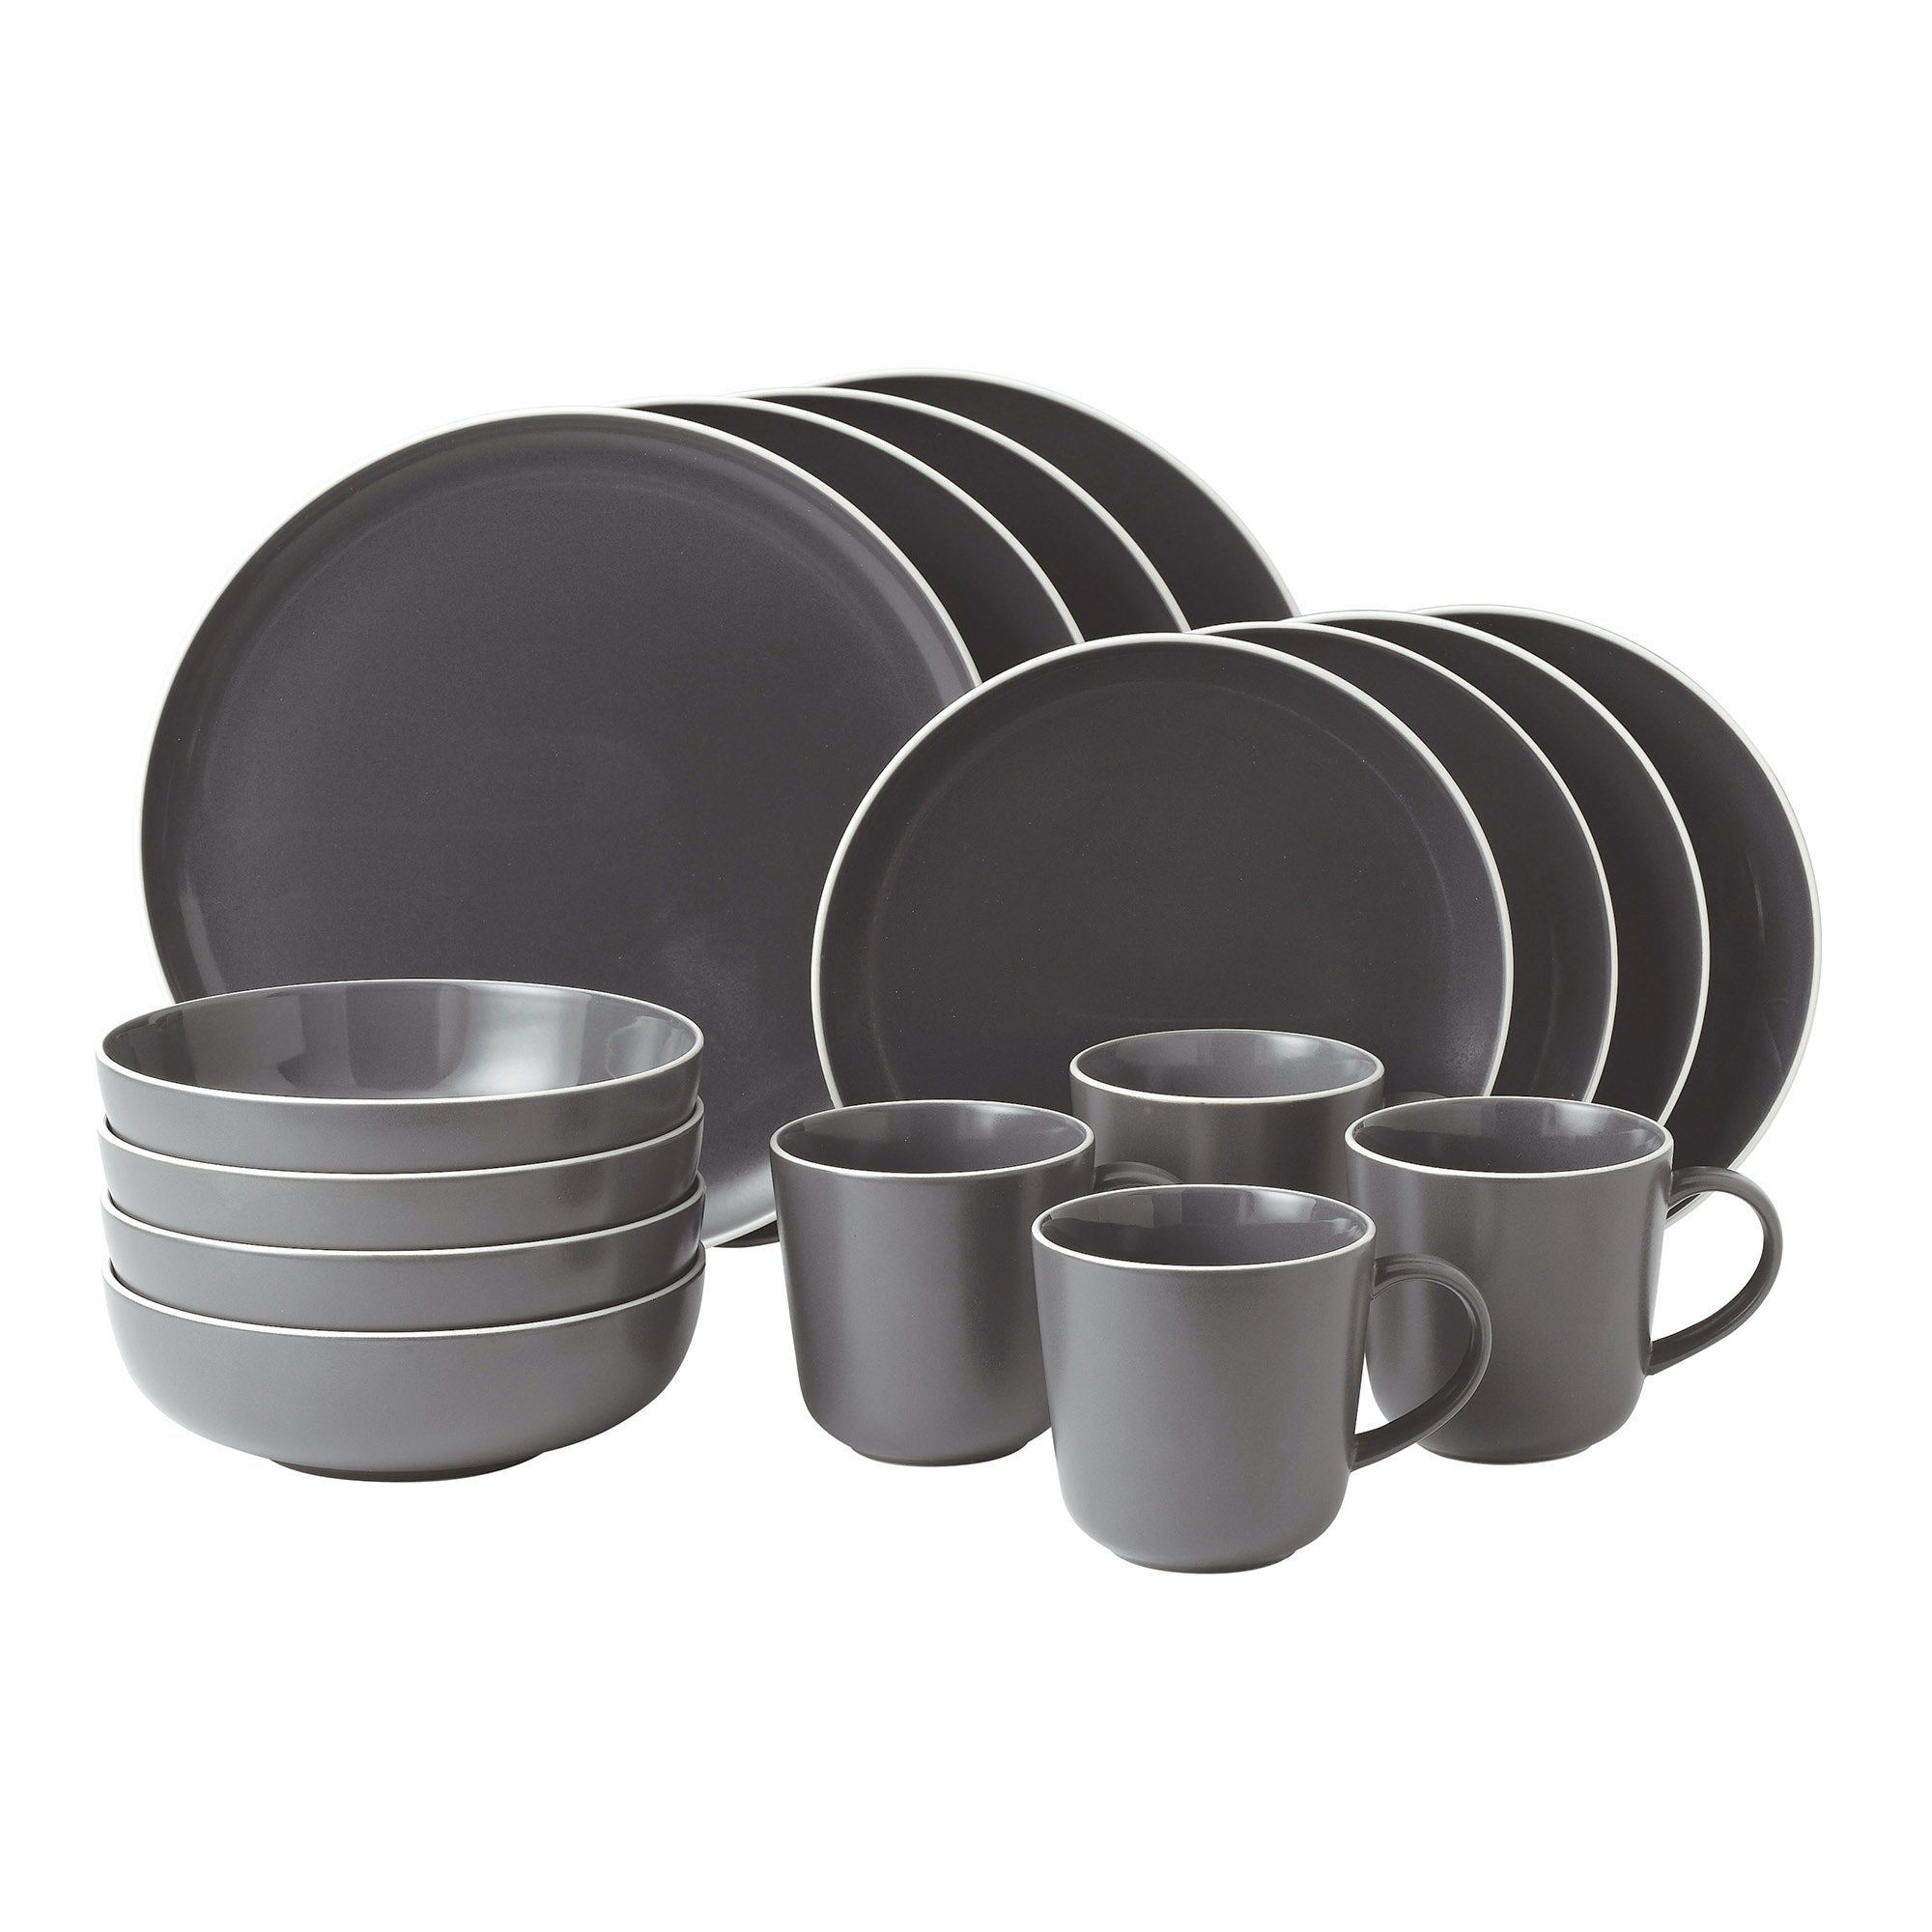 Gordon Ramsay Slate Bread Street Collection 16 Piece Dinner Set